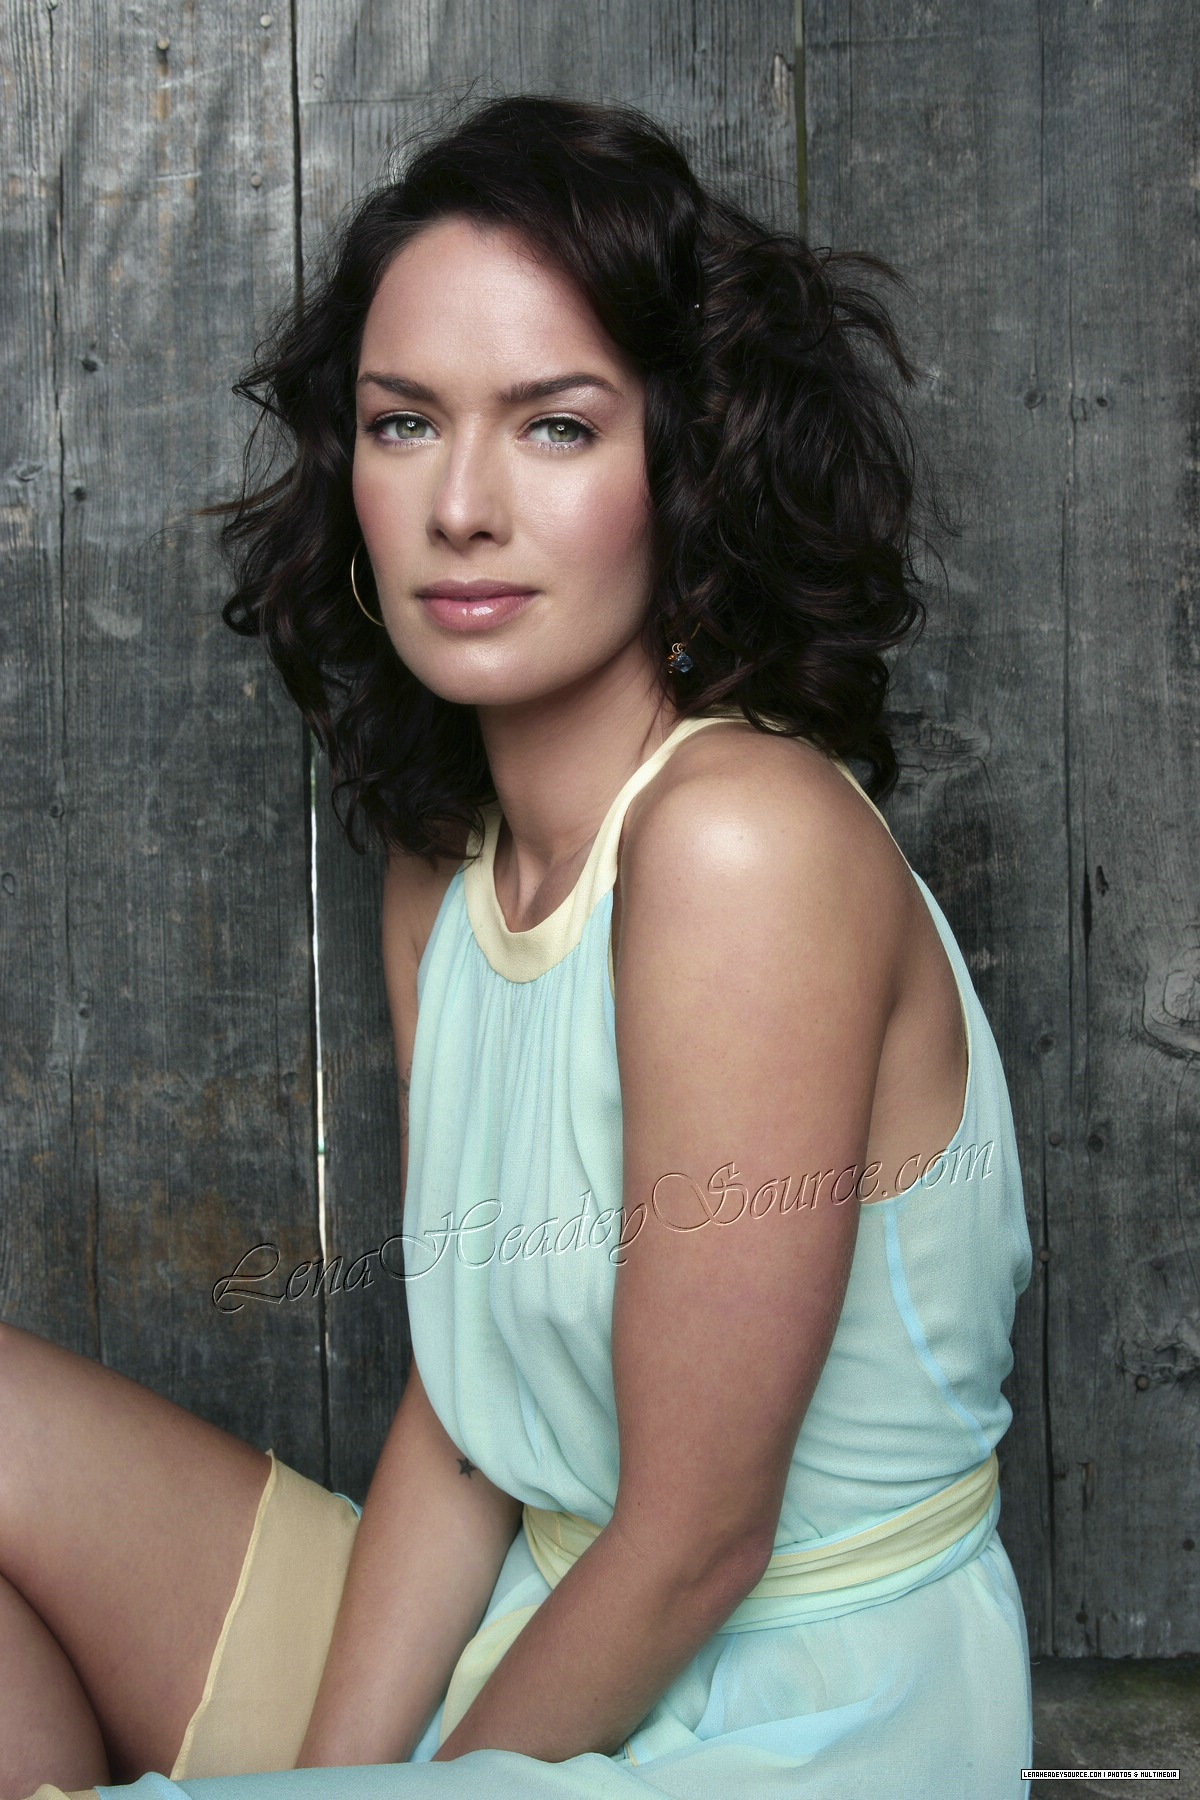 Shucky Ducky Lena Headey – Taylor Network of Podcasts